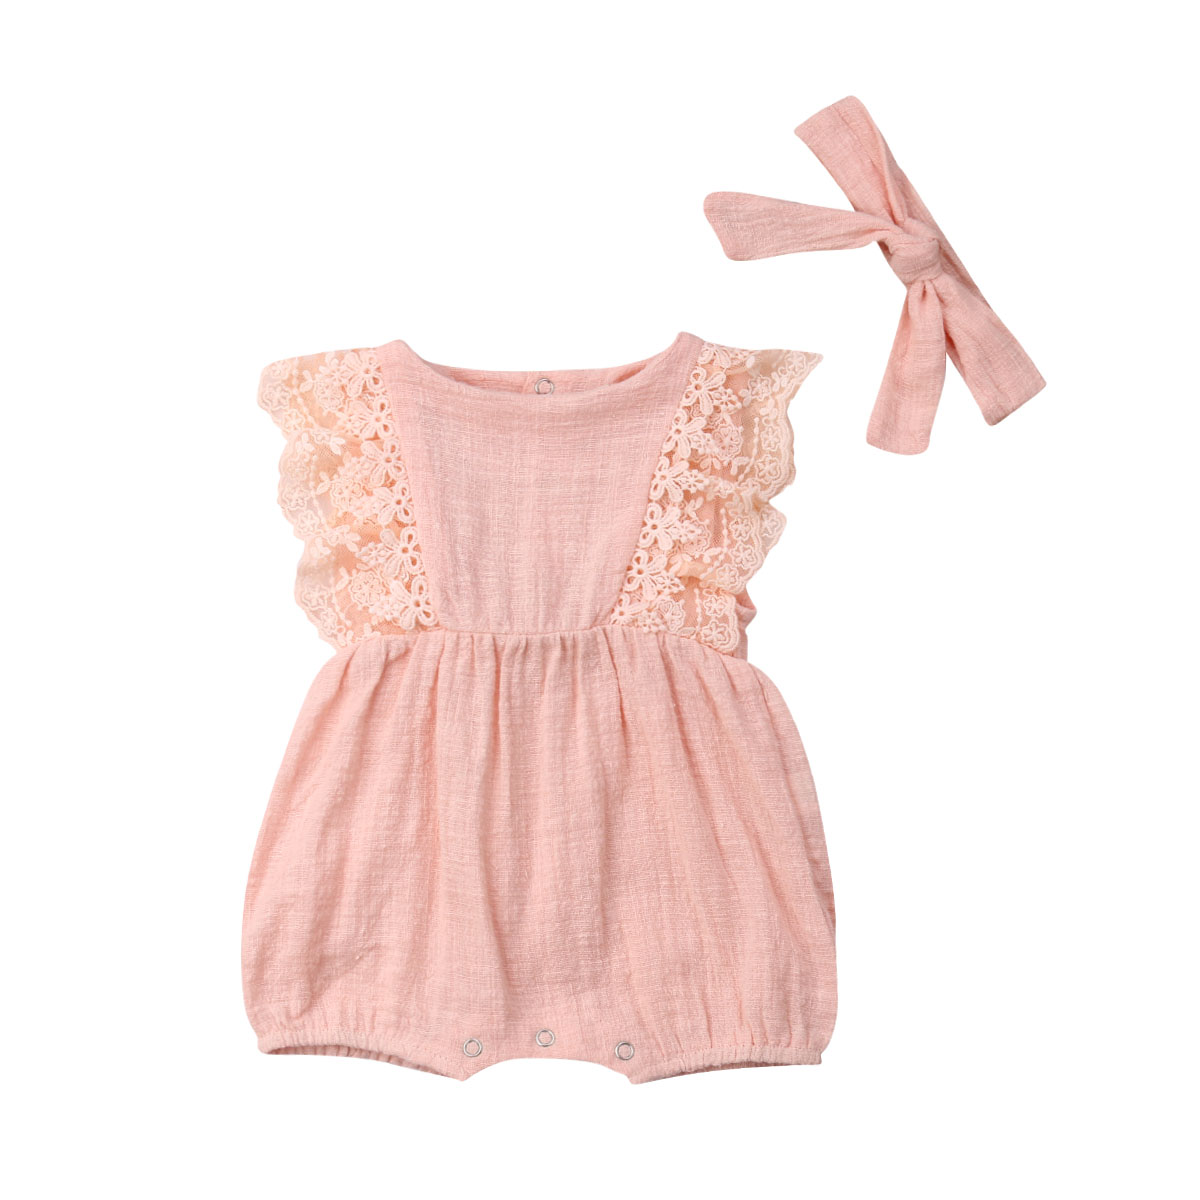 Summer Newborn Infant Baby Girls Clothing Lace Ruffles Baby Girl   Romper   Jumpsuit Toddler Baby Girl Costumes